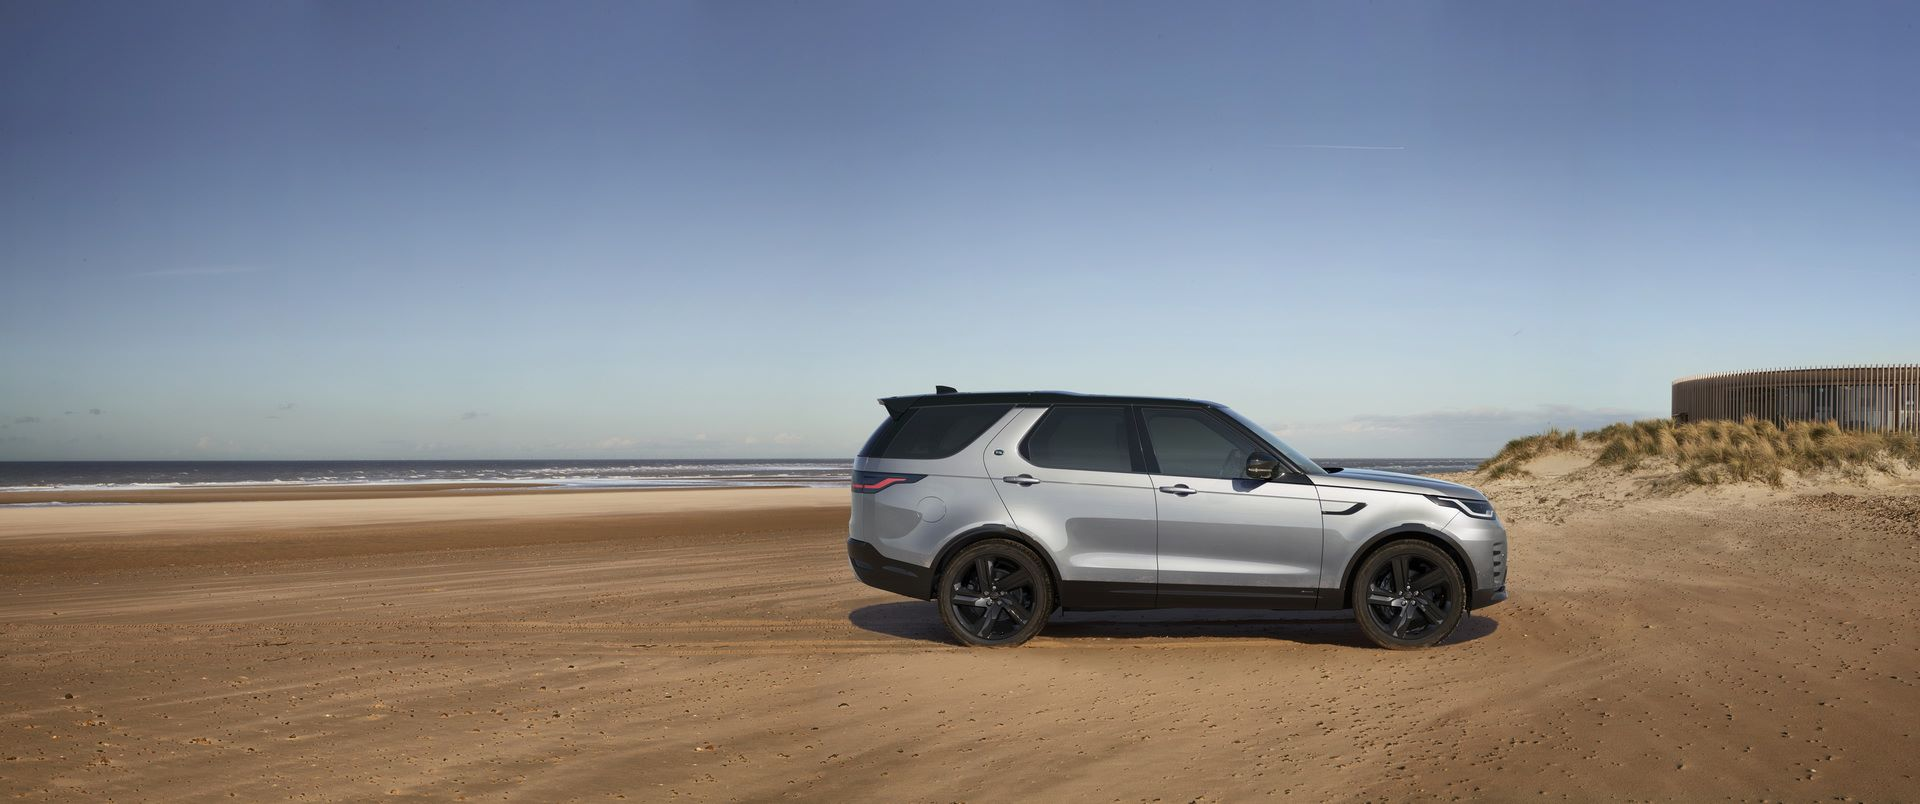 1_2021-Land-Rover-Discovery-82